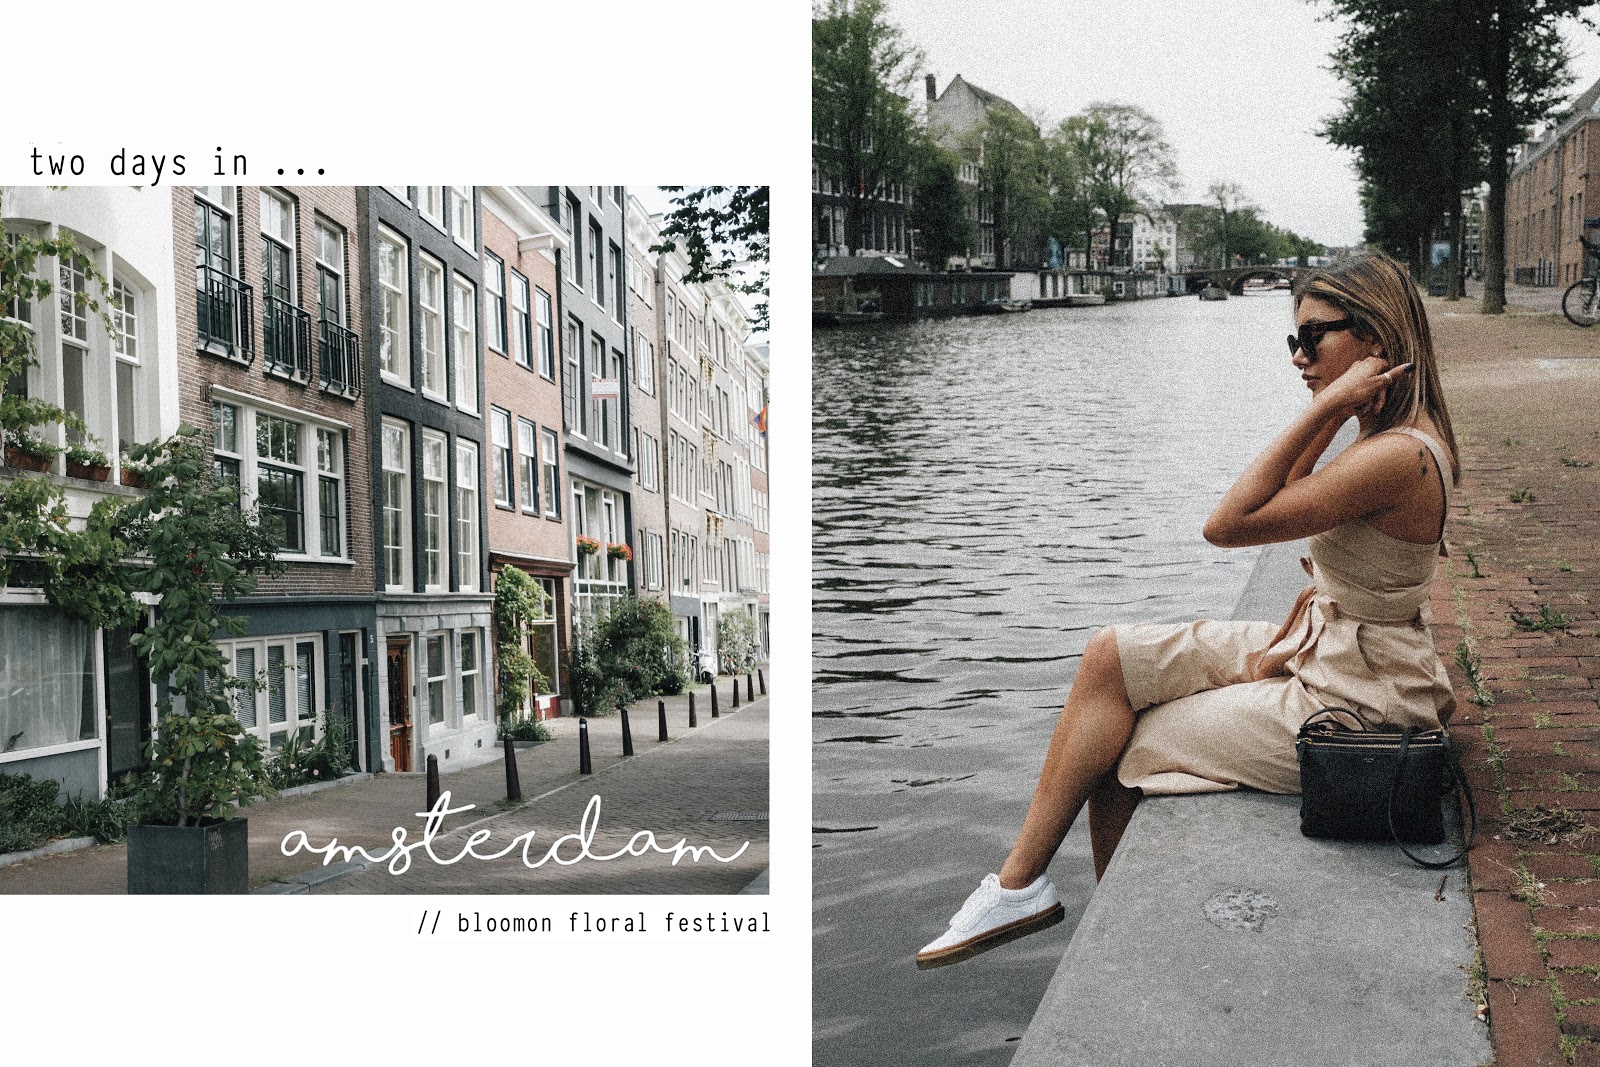 I Overcame My Anxiety and Flew to Amsterdam On My Own // Bloomon Floral Festival